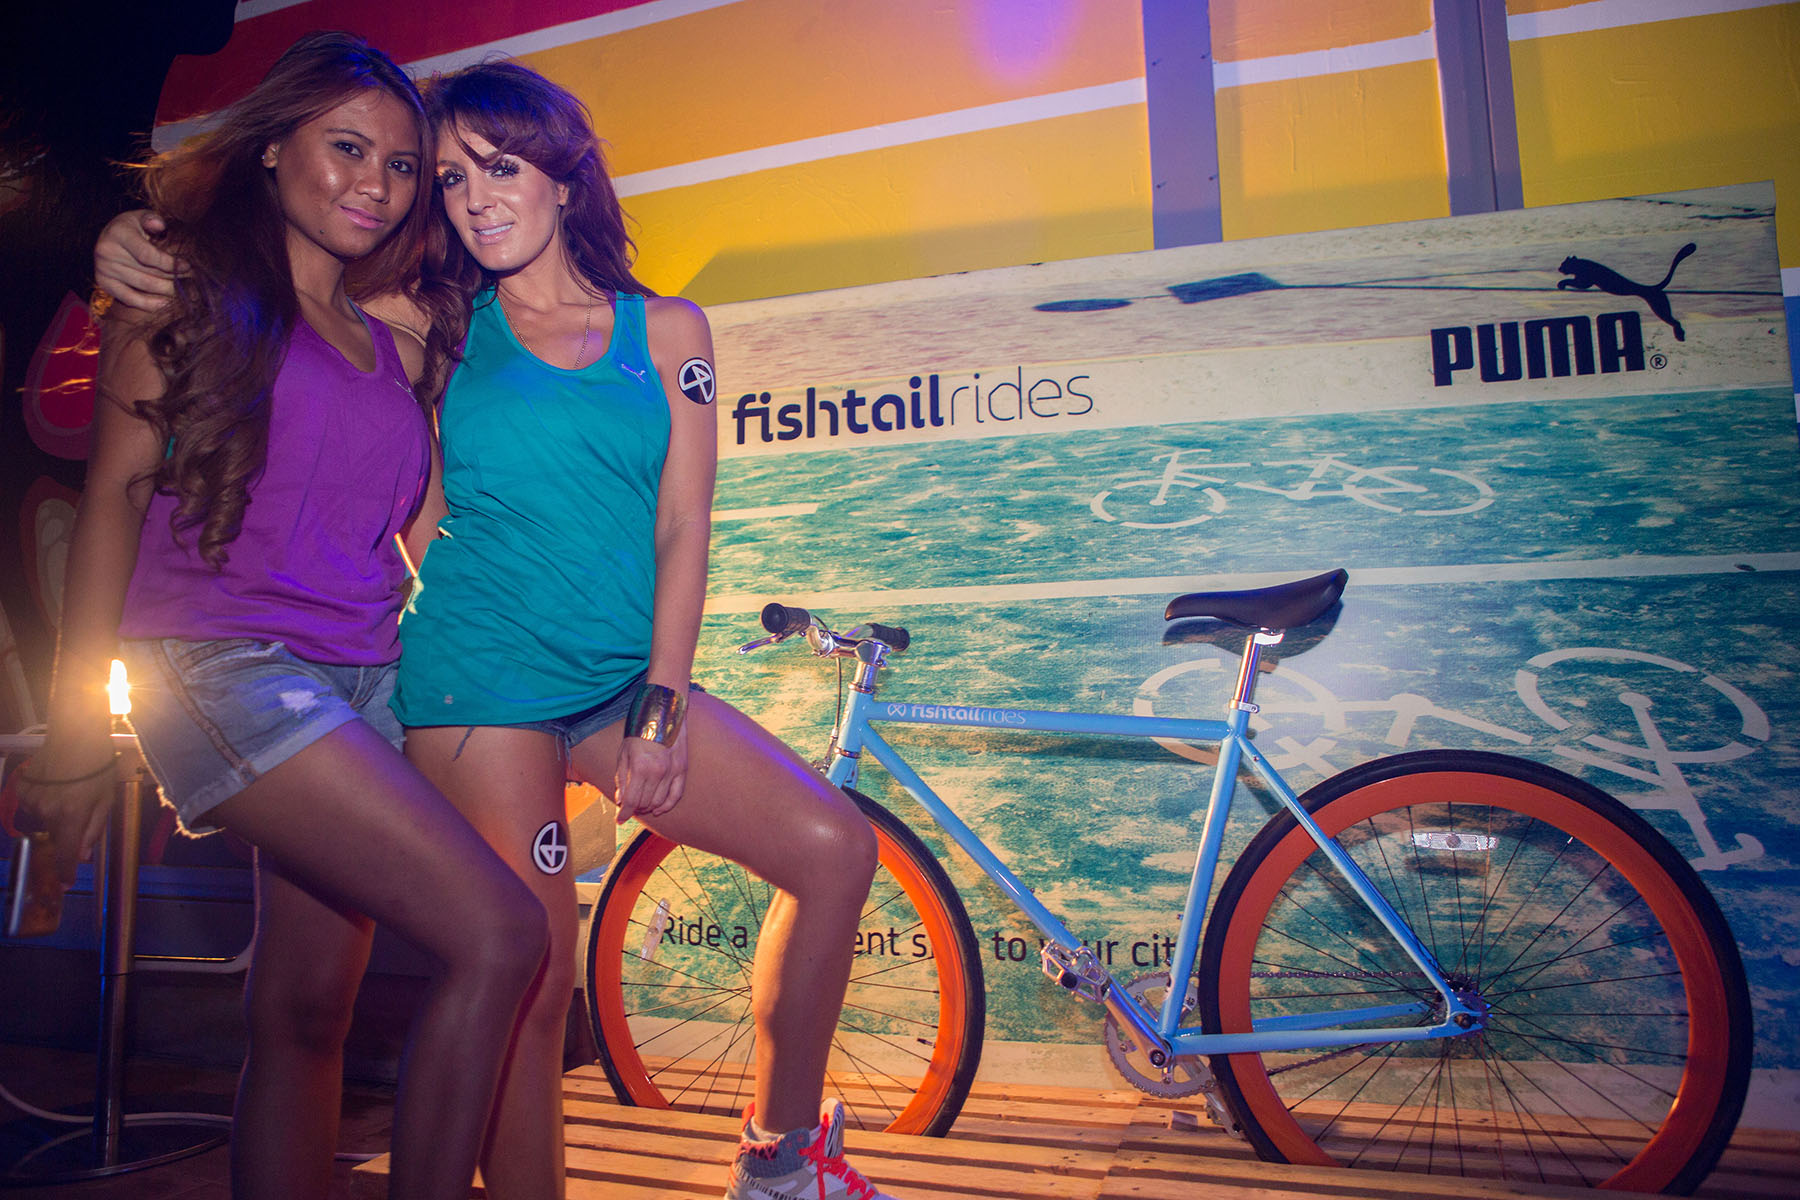 Fishtail ride PUMA event at the Media One Hotel by Loesje Kessels Fashion Photographer Dubai